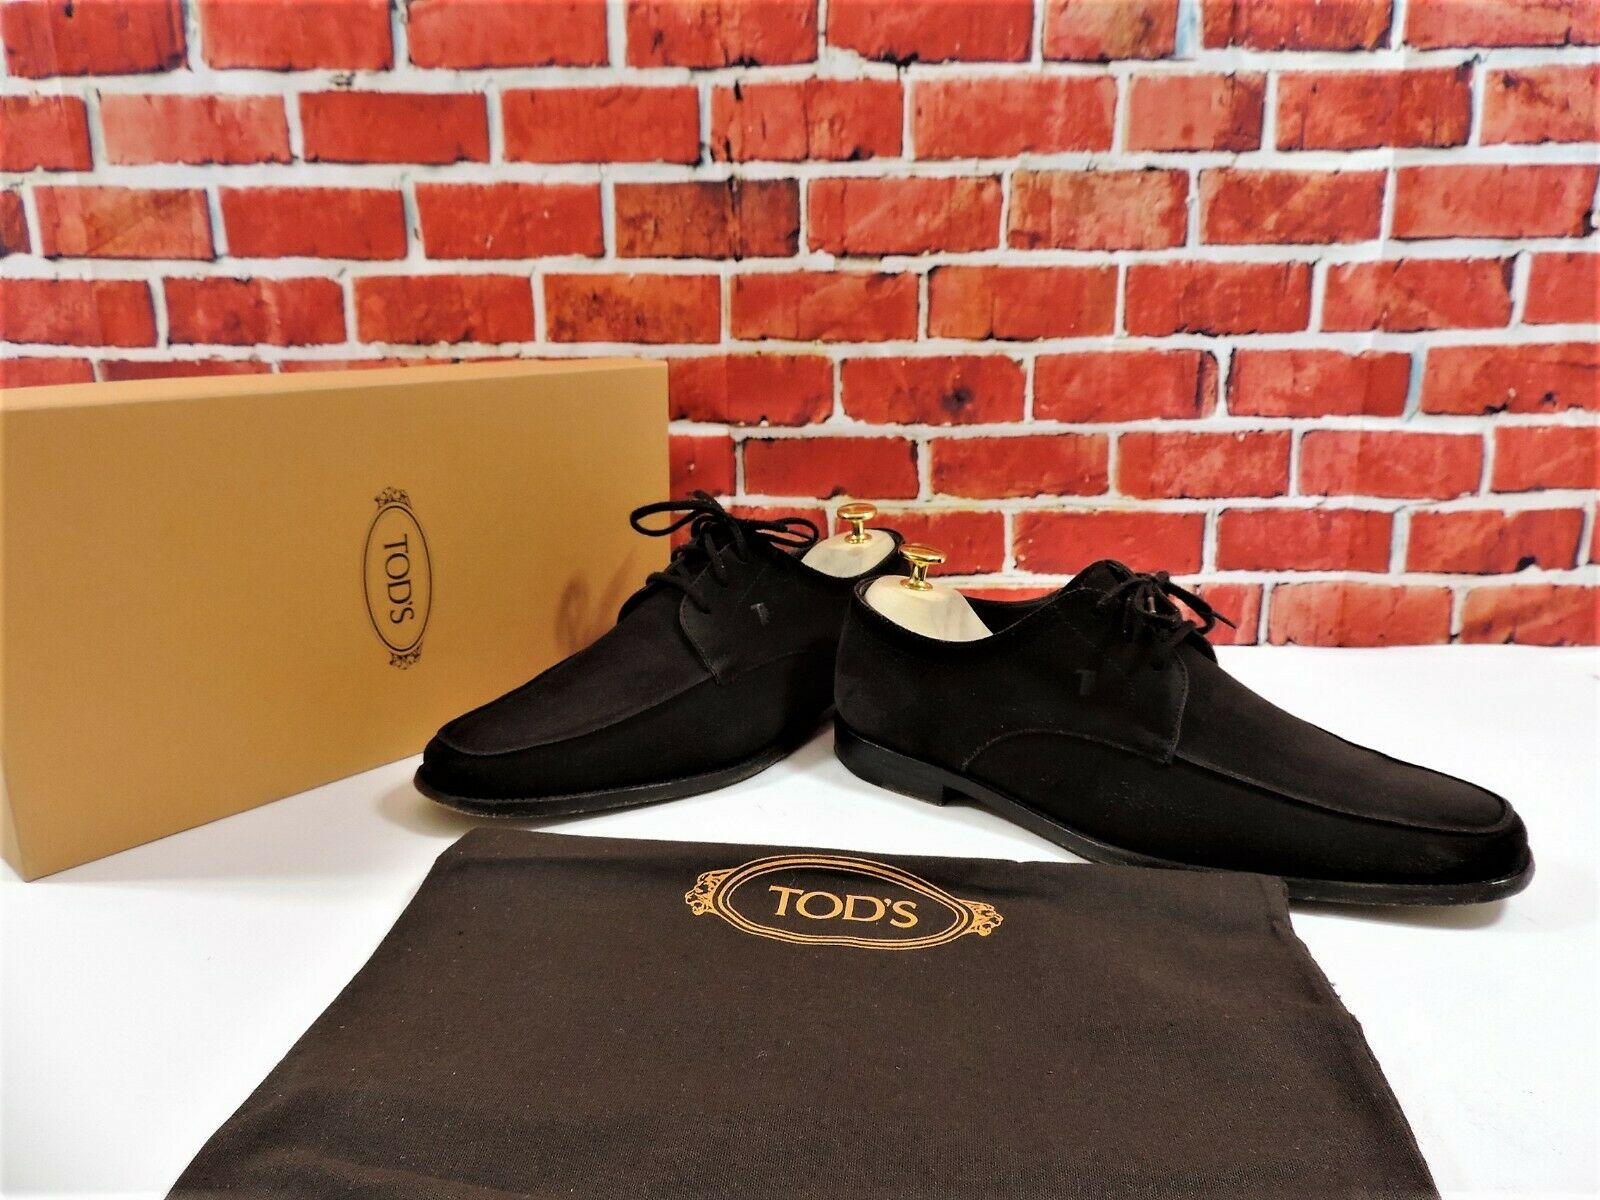 Tods Brown Suede US 8.5 Worn 2 3 times Boxed with shoes Bag